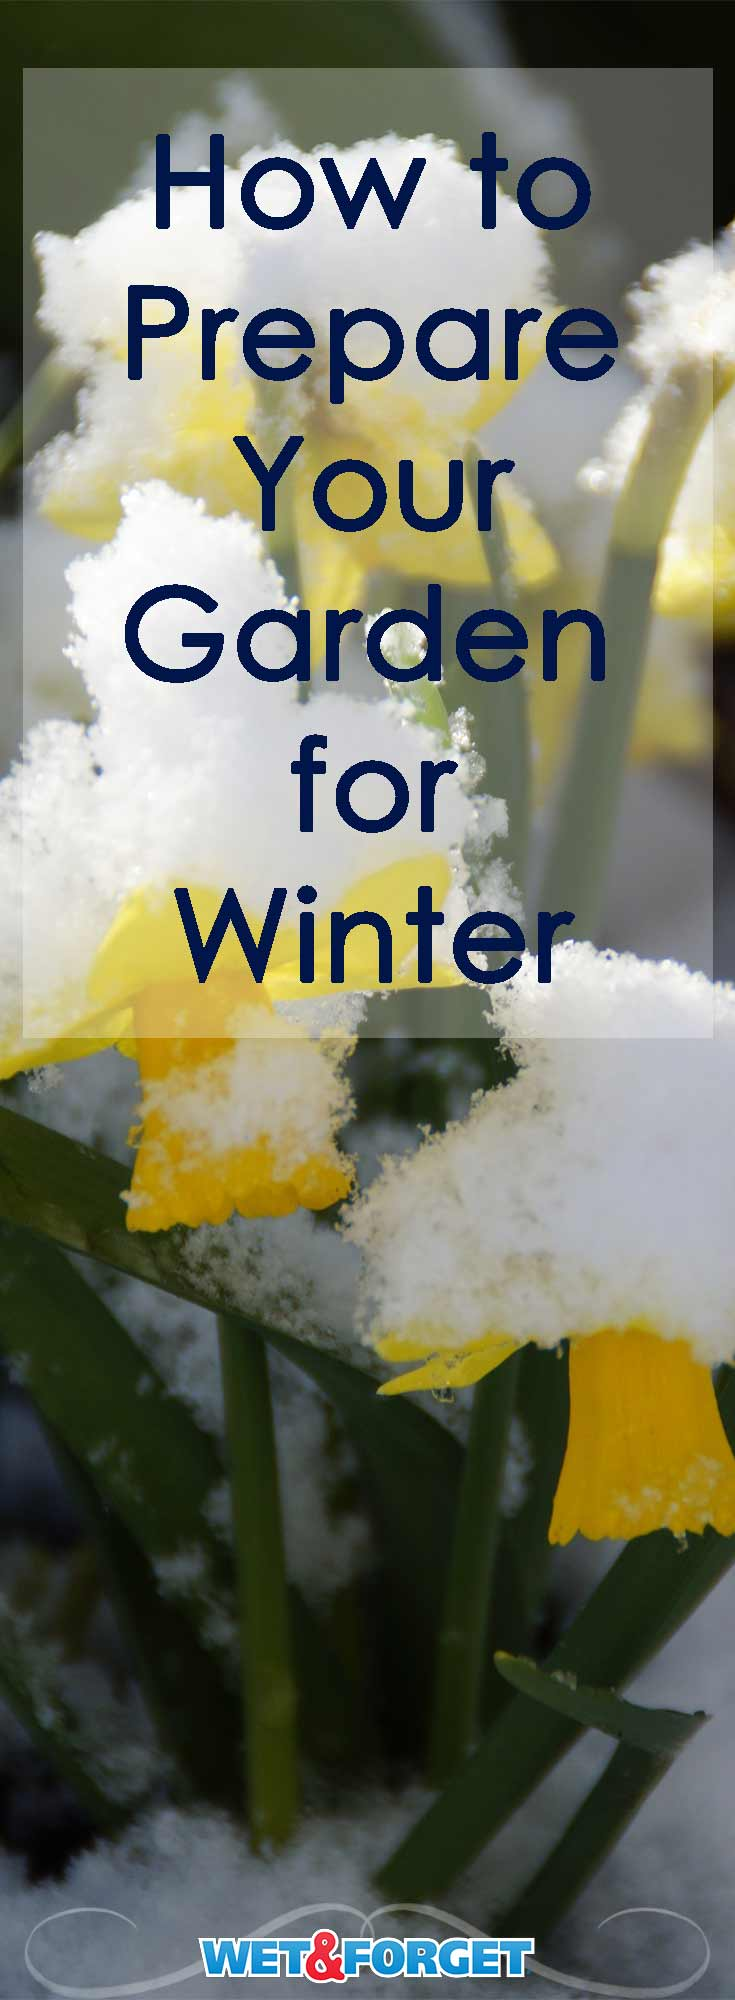 Prepare your garden for the cold winter weather with these 5 steps!